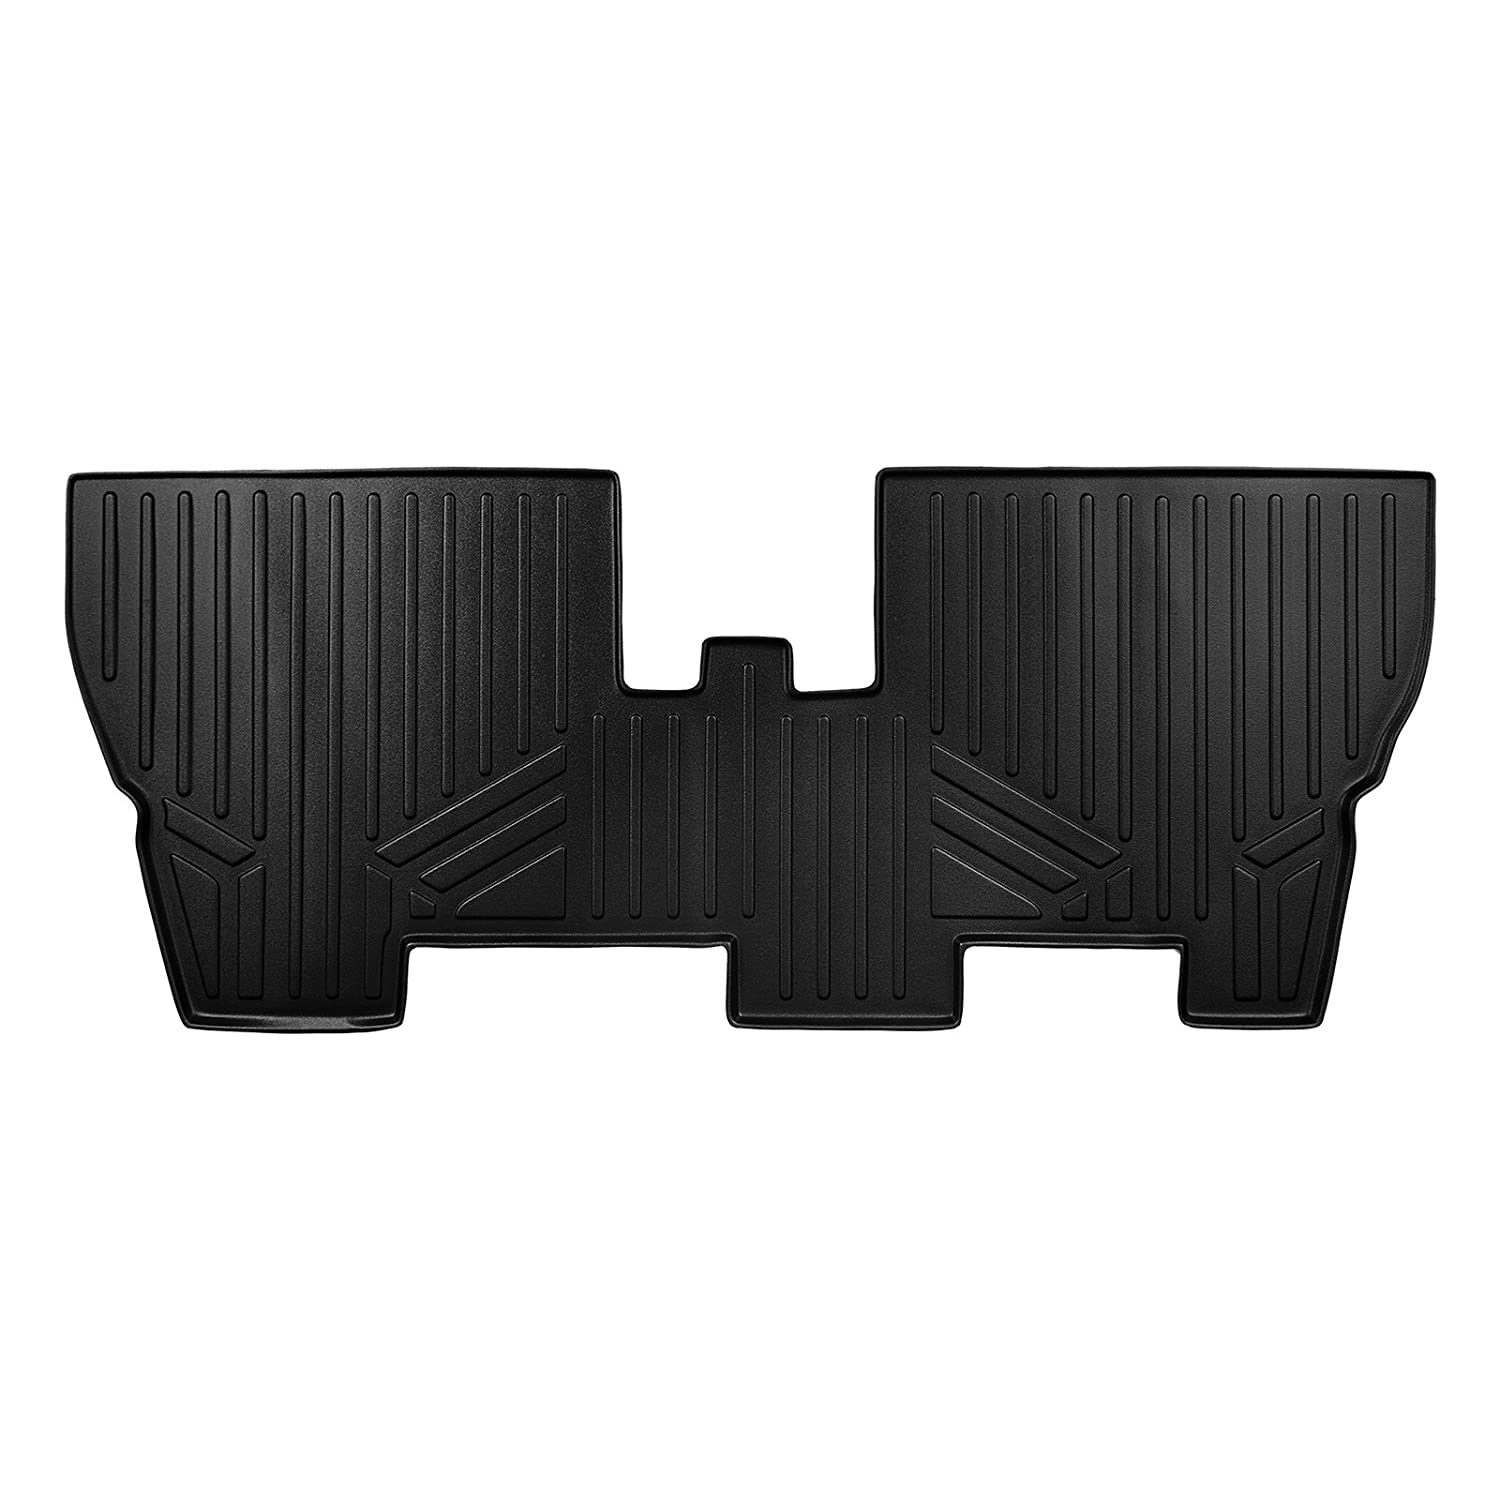 MAX LINER C0232 Custom Fit Floor Mats 3rd Liner Black for 2017-2019 Chrysler Pacifica with 2nd Row Center Console No Hybrid